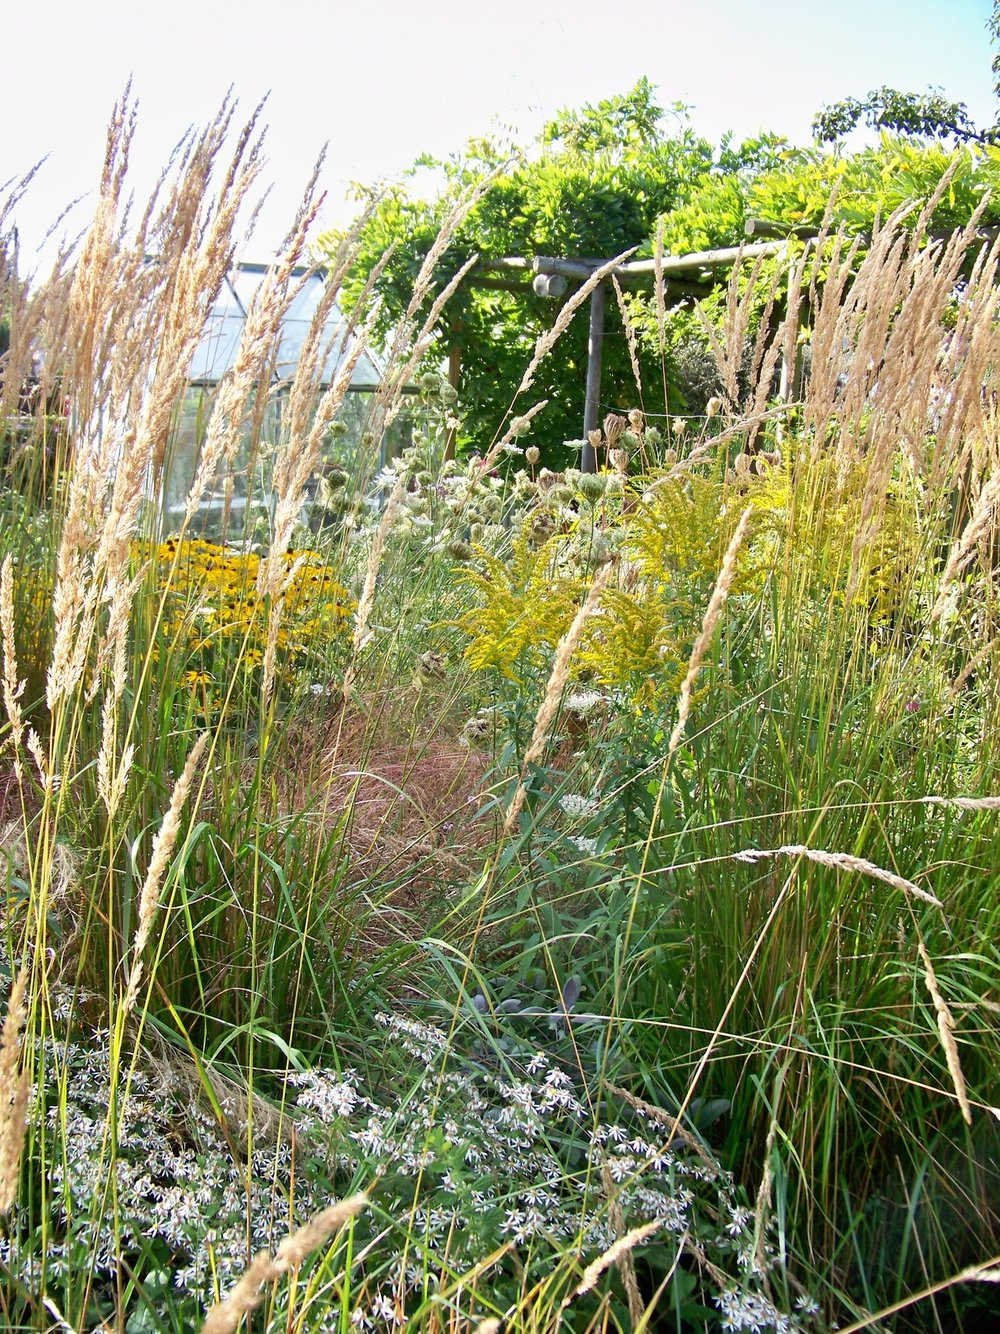 5th September 2012. In the garden this afternoon.